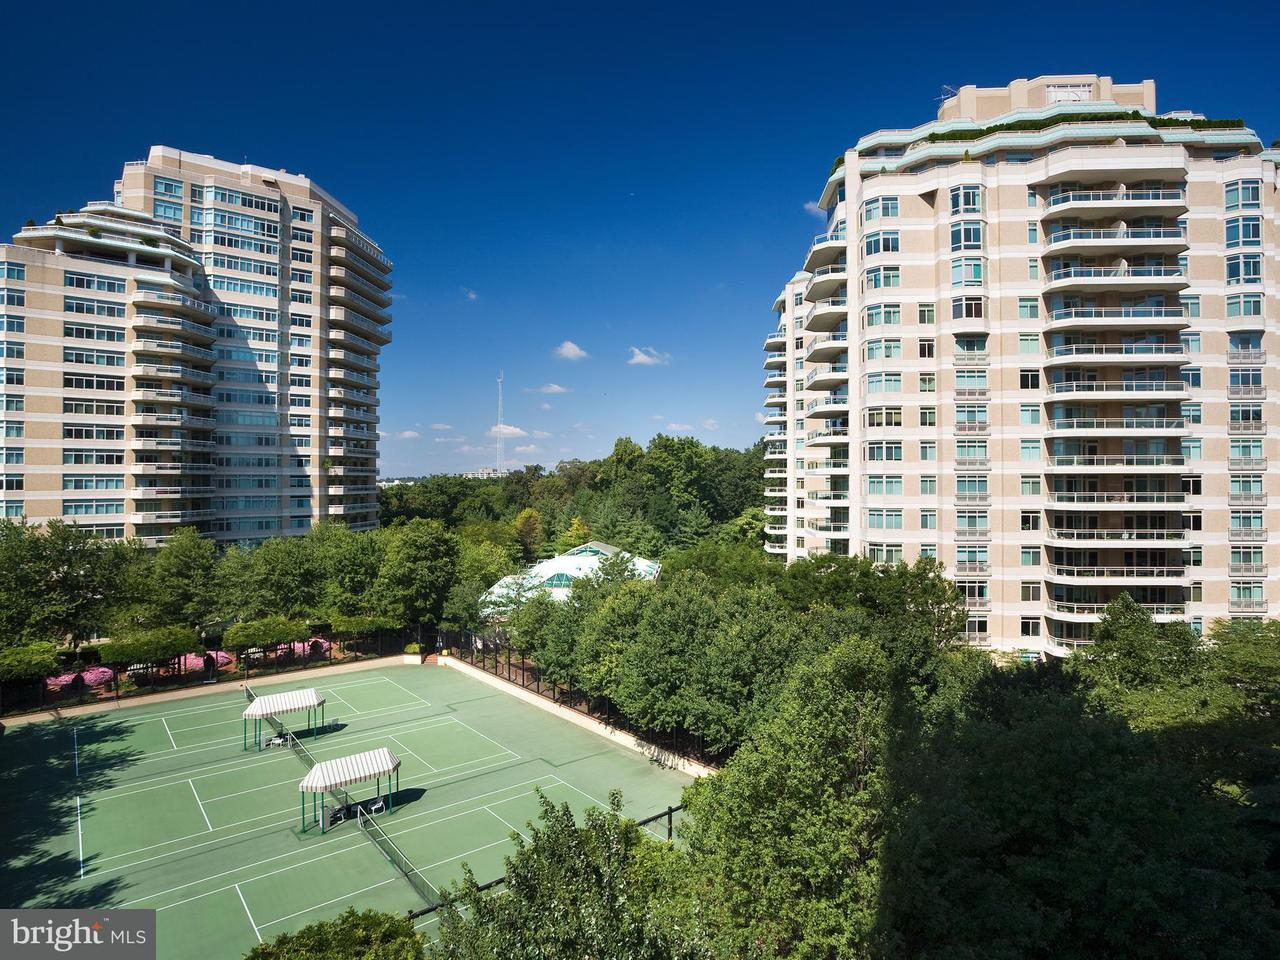 Condominium for Sale at 5610 WISCONSIN AVE #1003 5610 WISCONSIN AVE #1003 Chevy Chase, Maryland 20815 United States